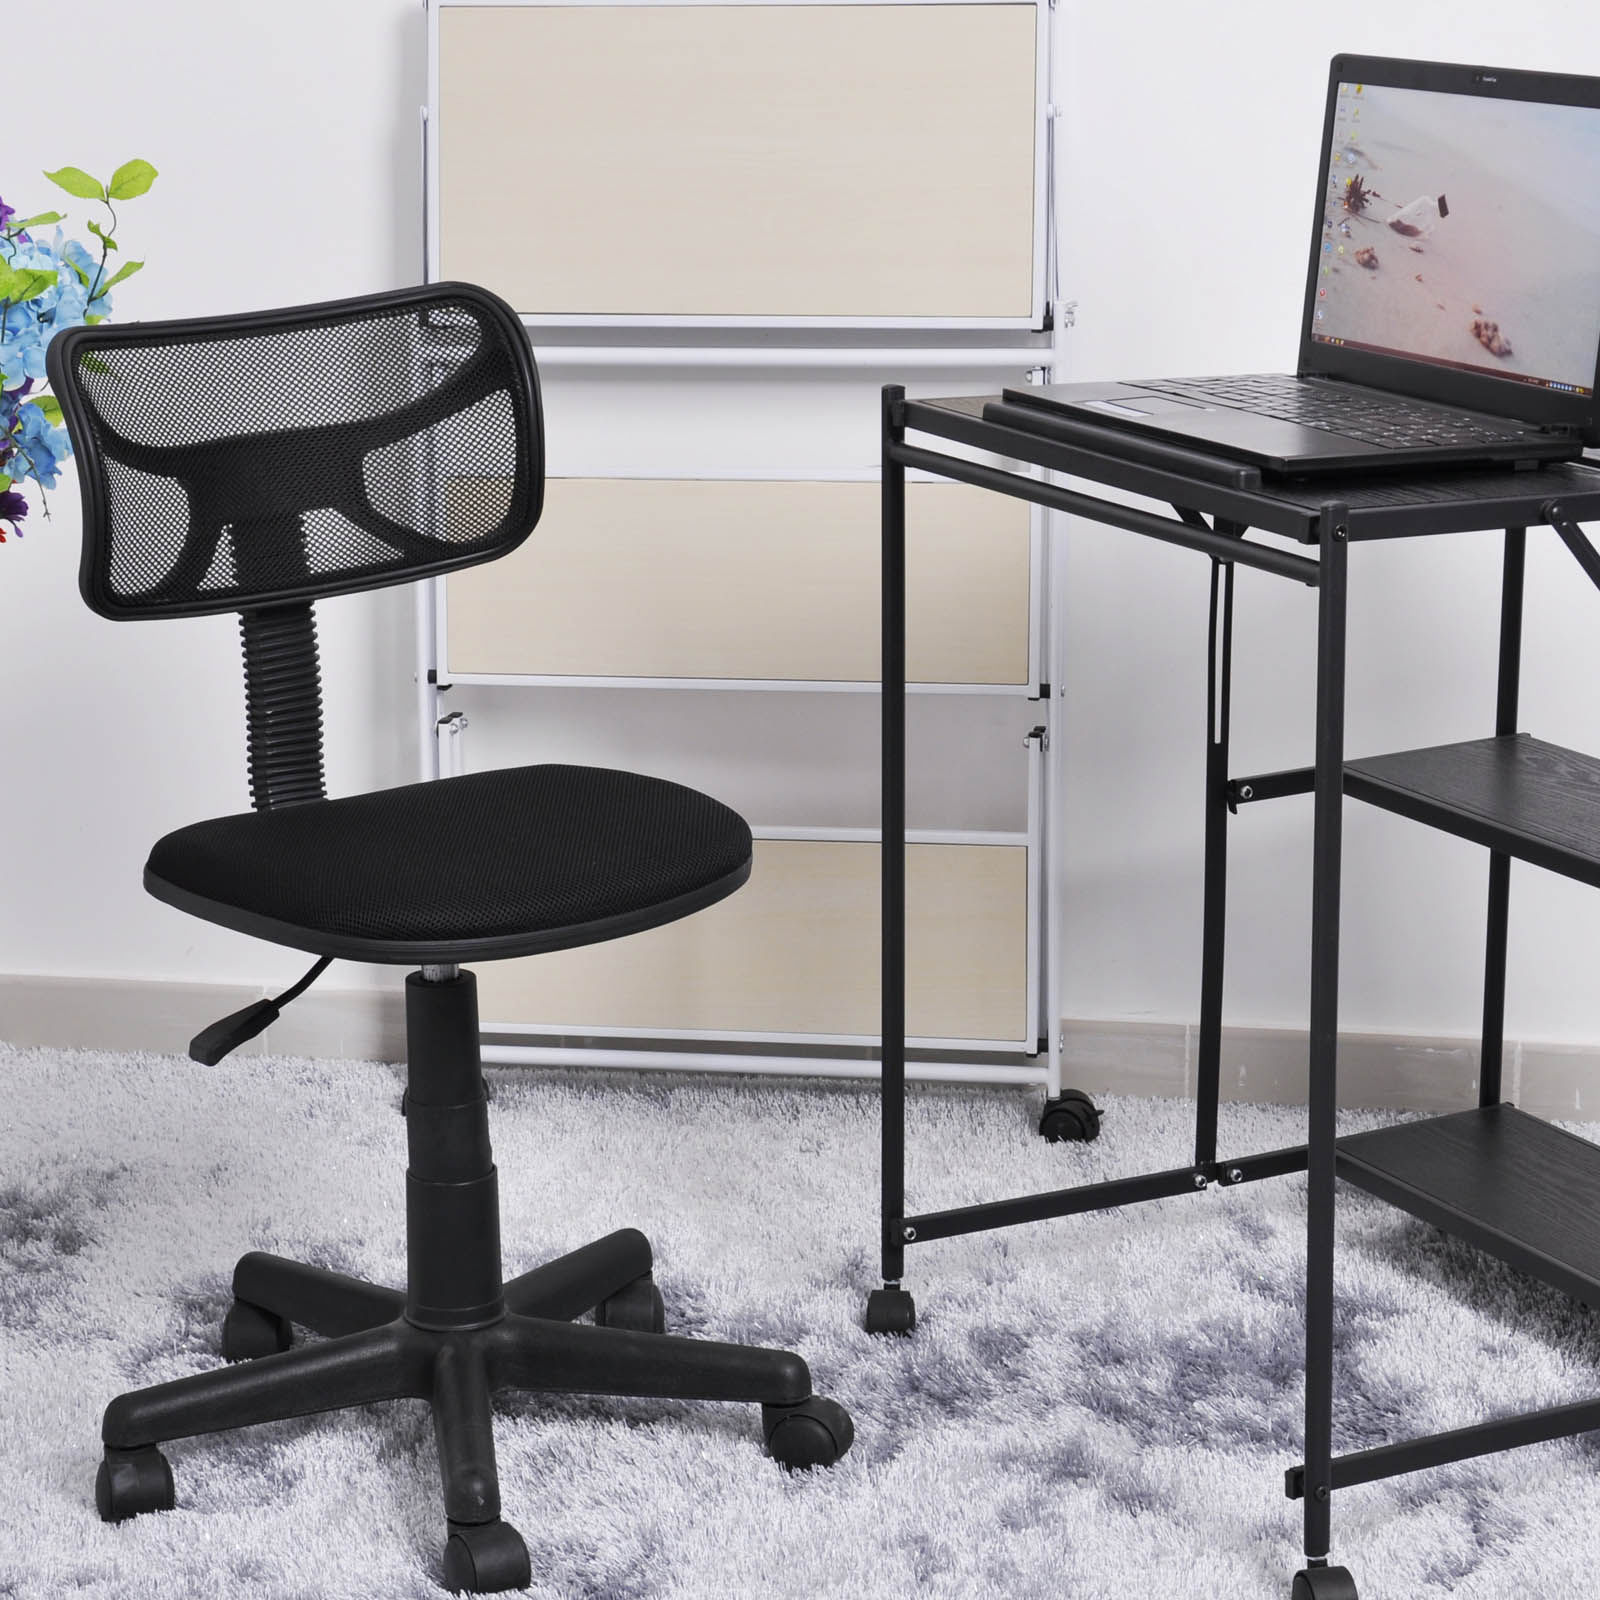 swivel office chair without arms bedroom teal ergonomic kid room mesh task computer desk midback